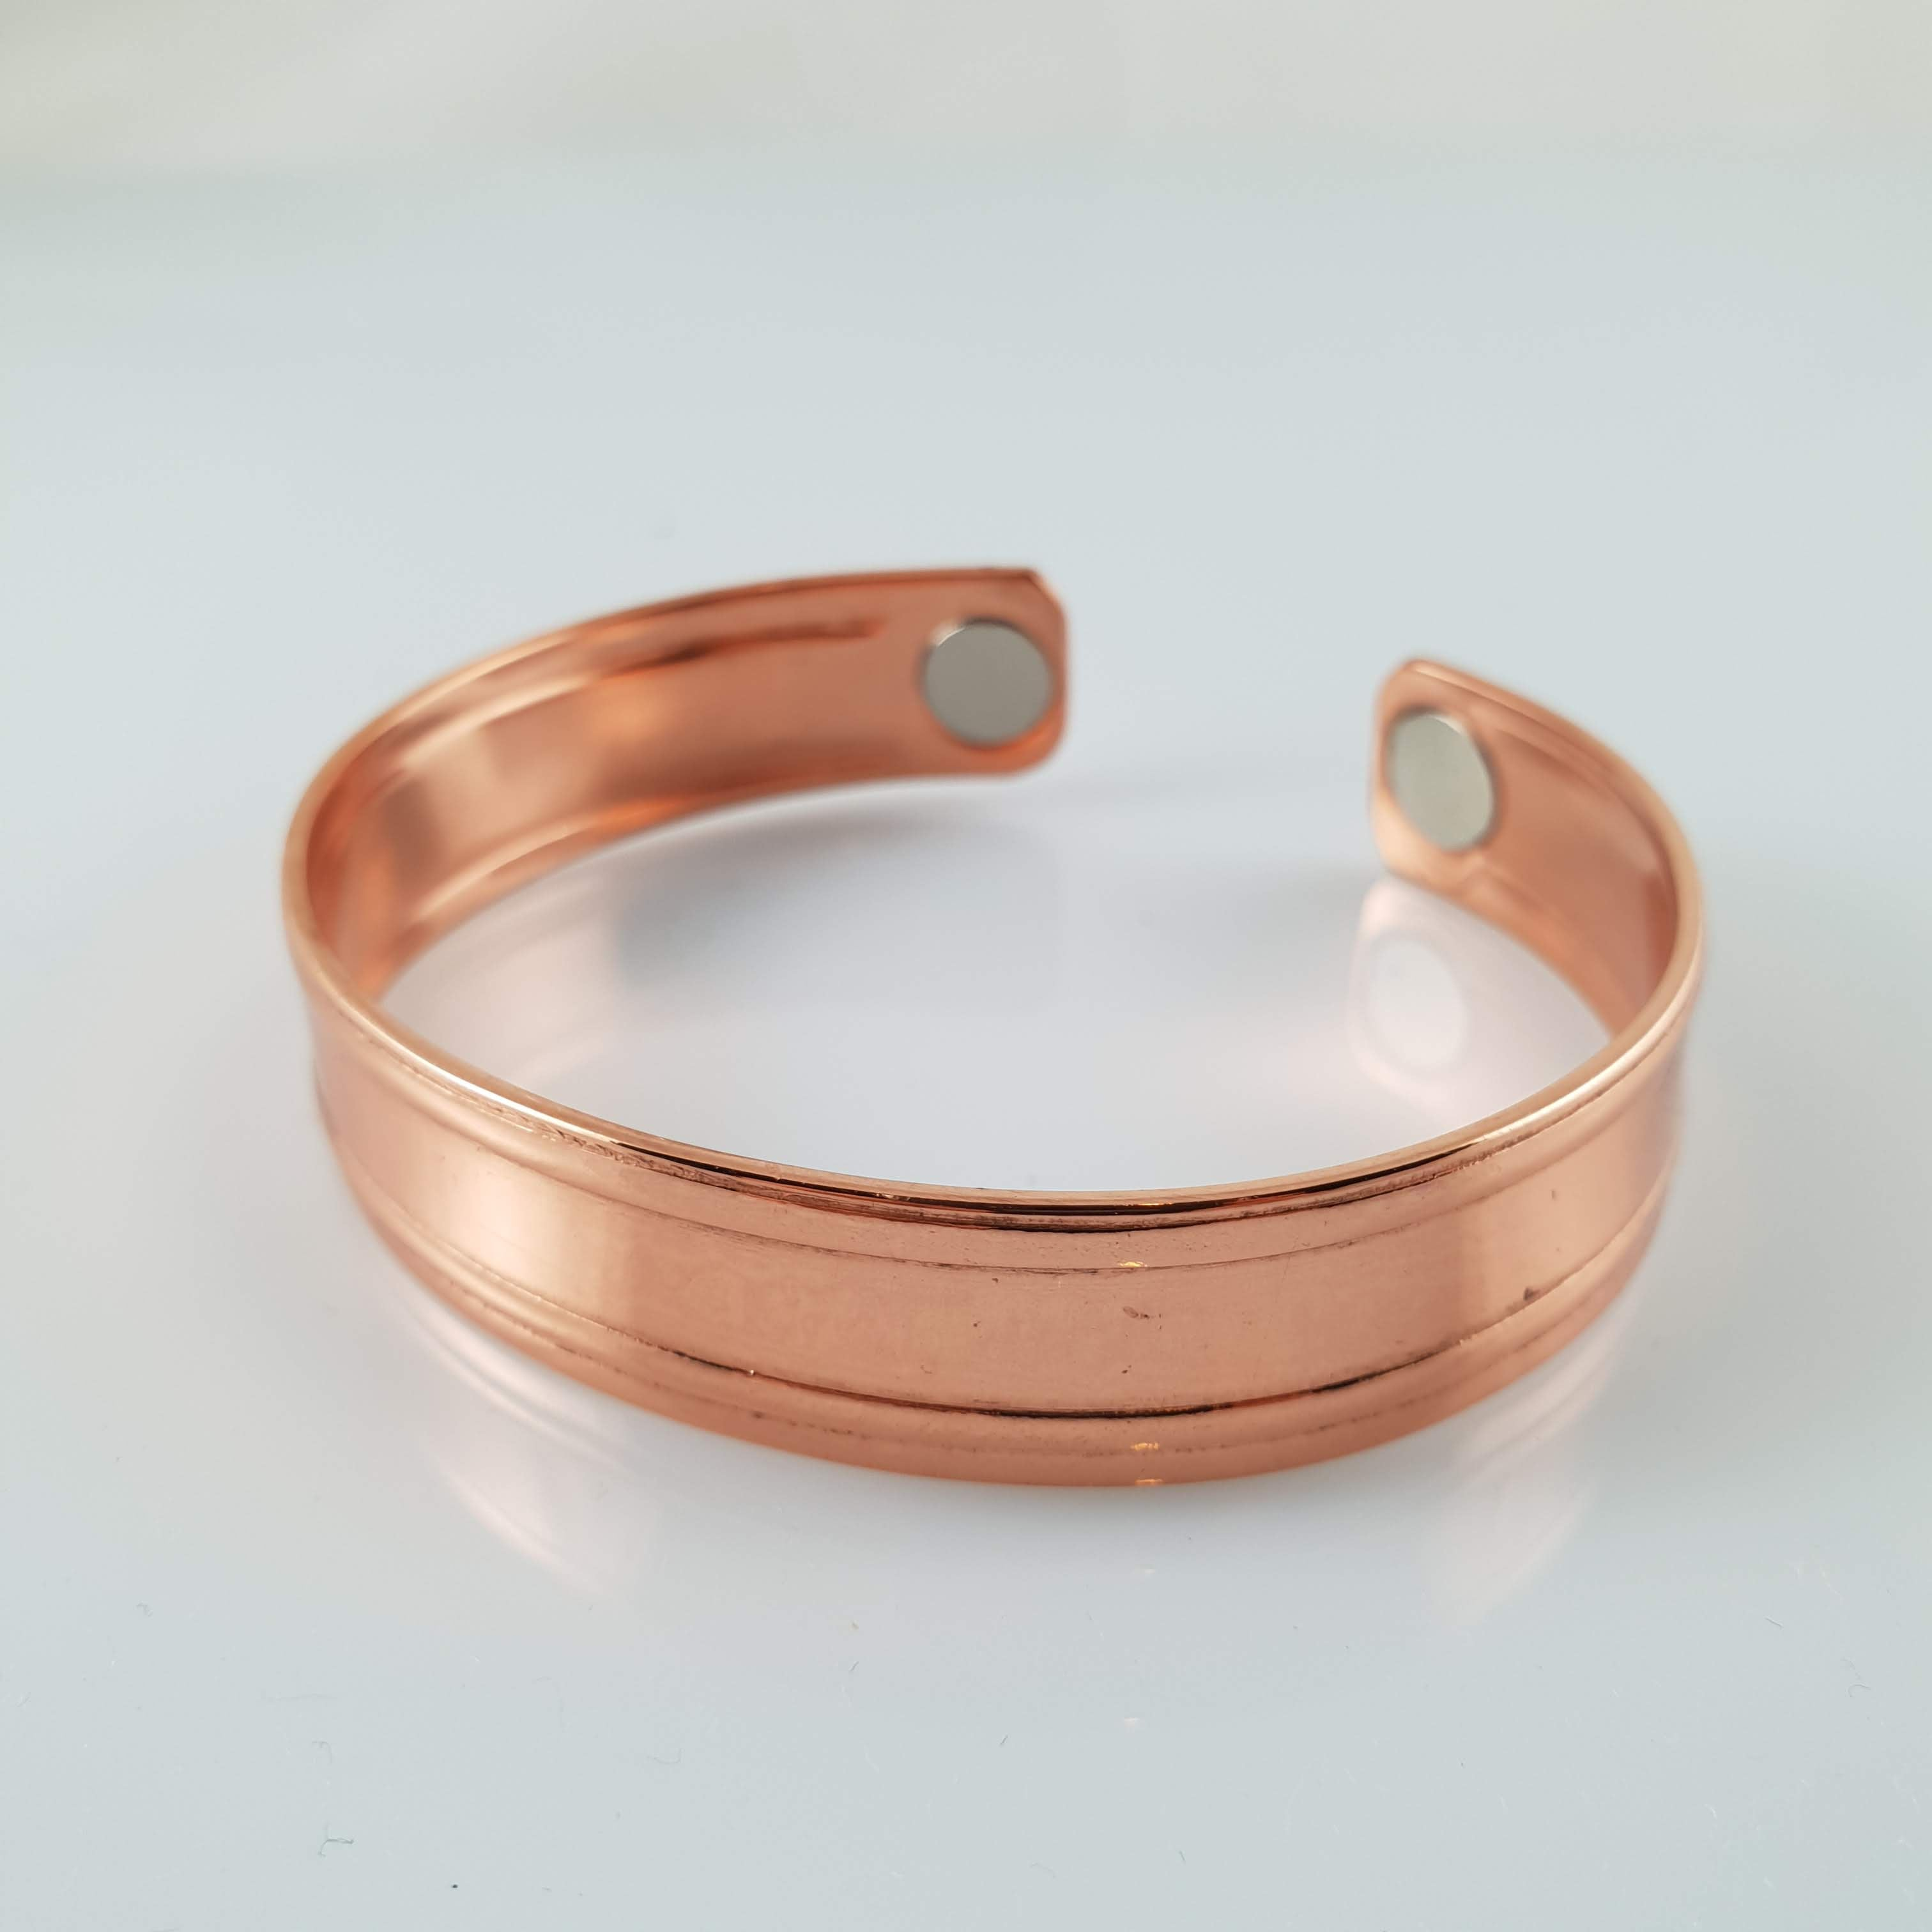 Handmade NZ Pure Copper Bracelet with Stripe